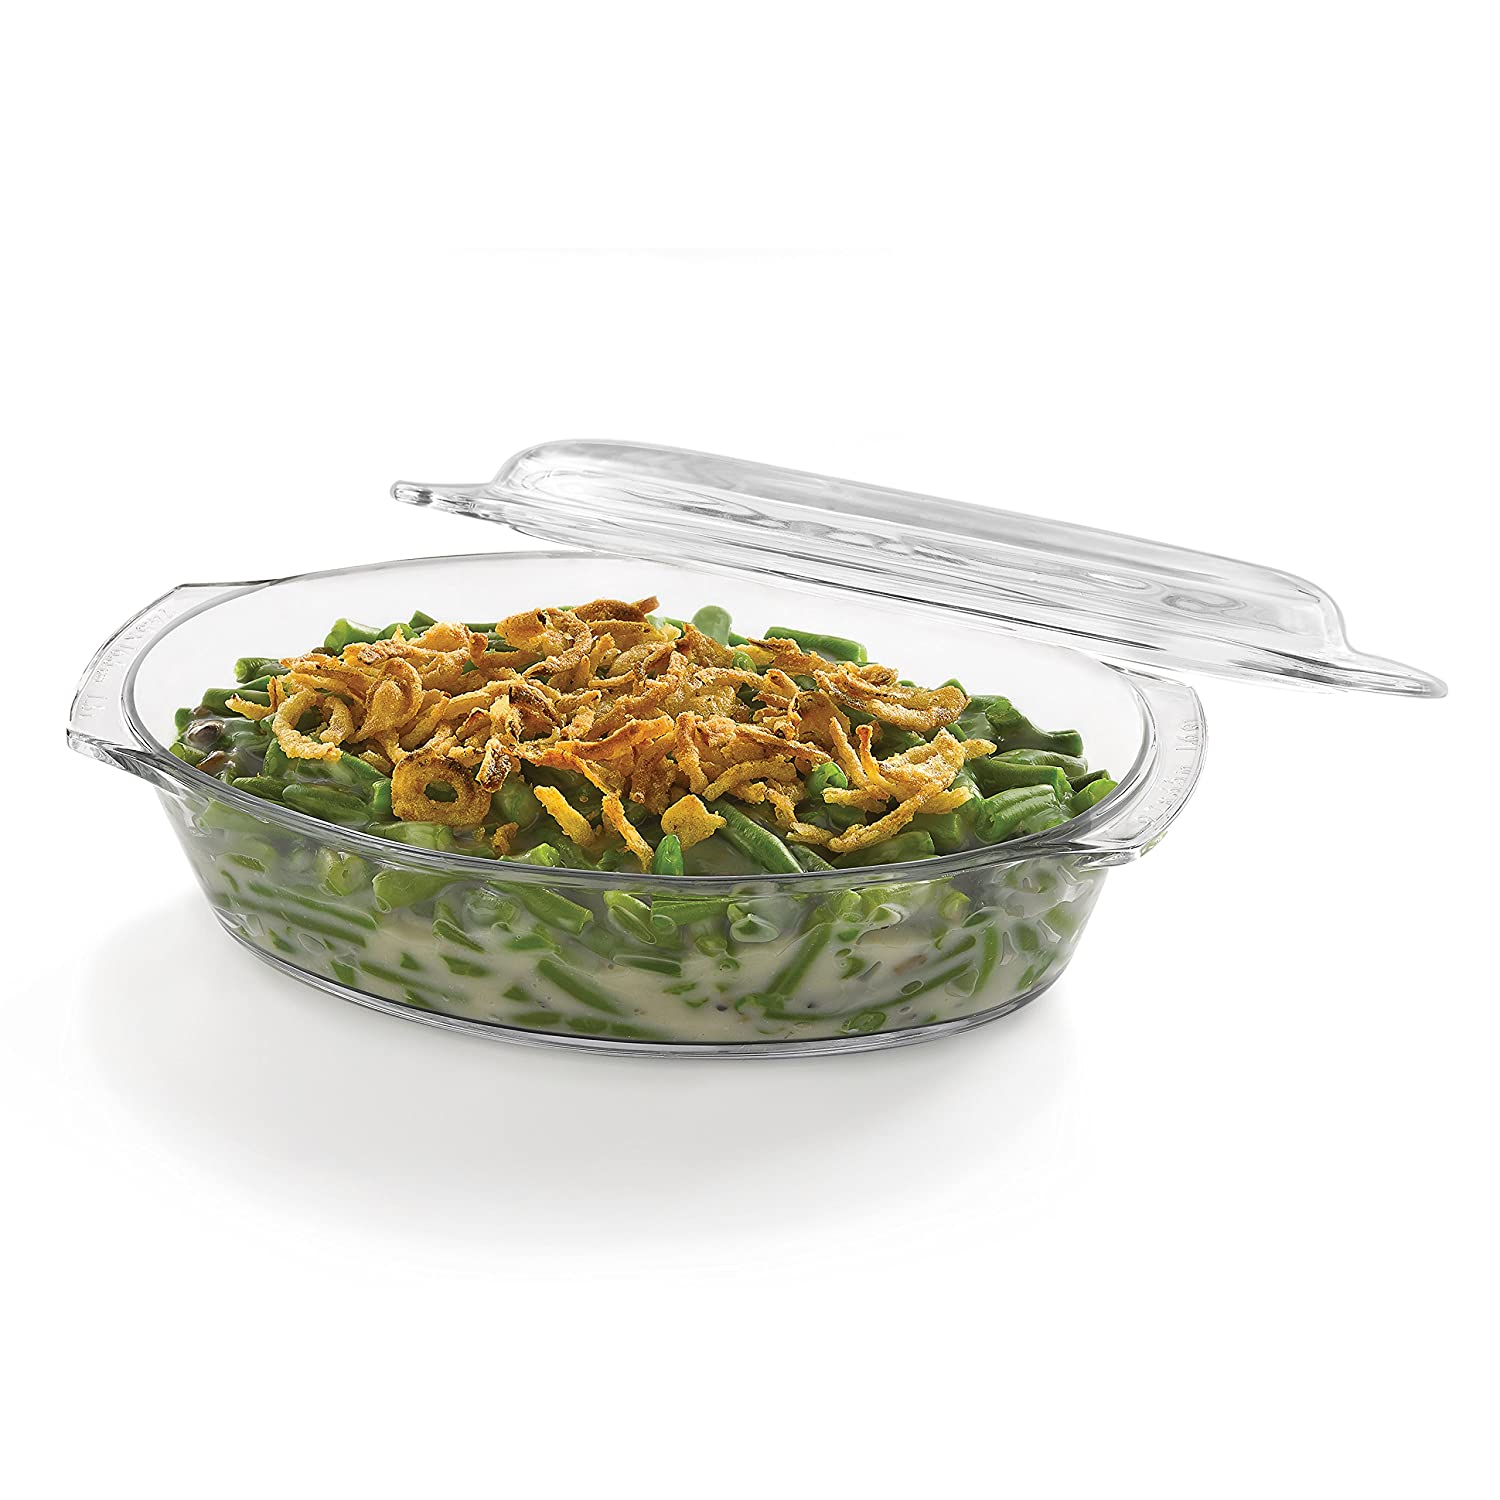 Libbey Baker's Basics Glass Oval Casserole with Cover 56281